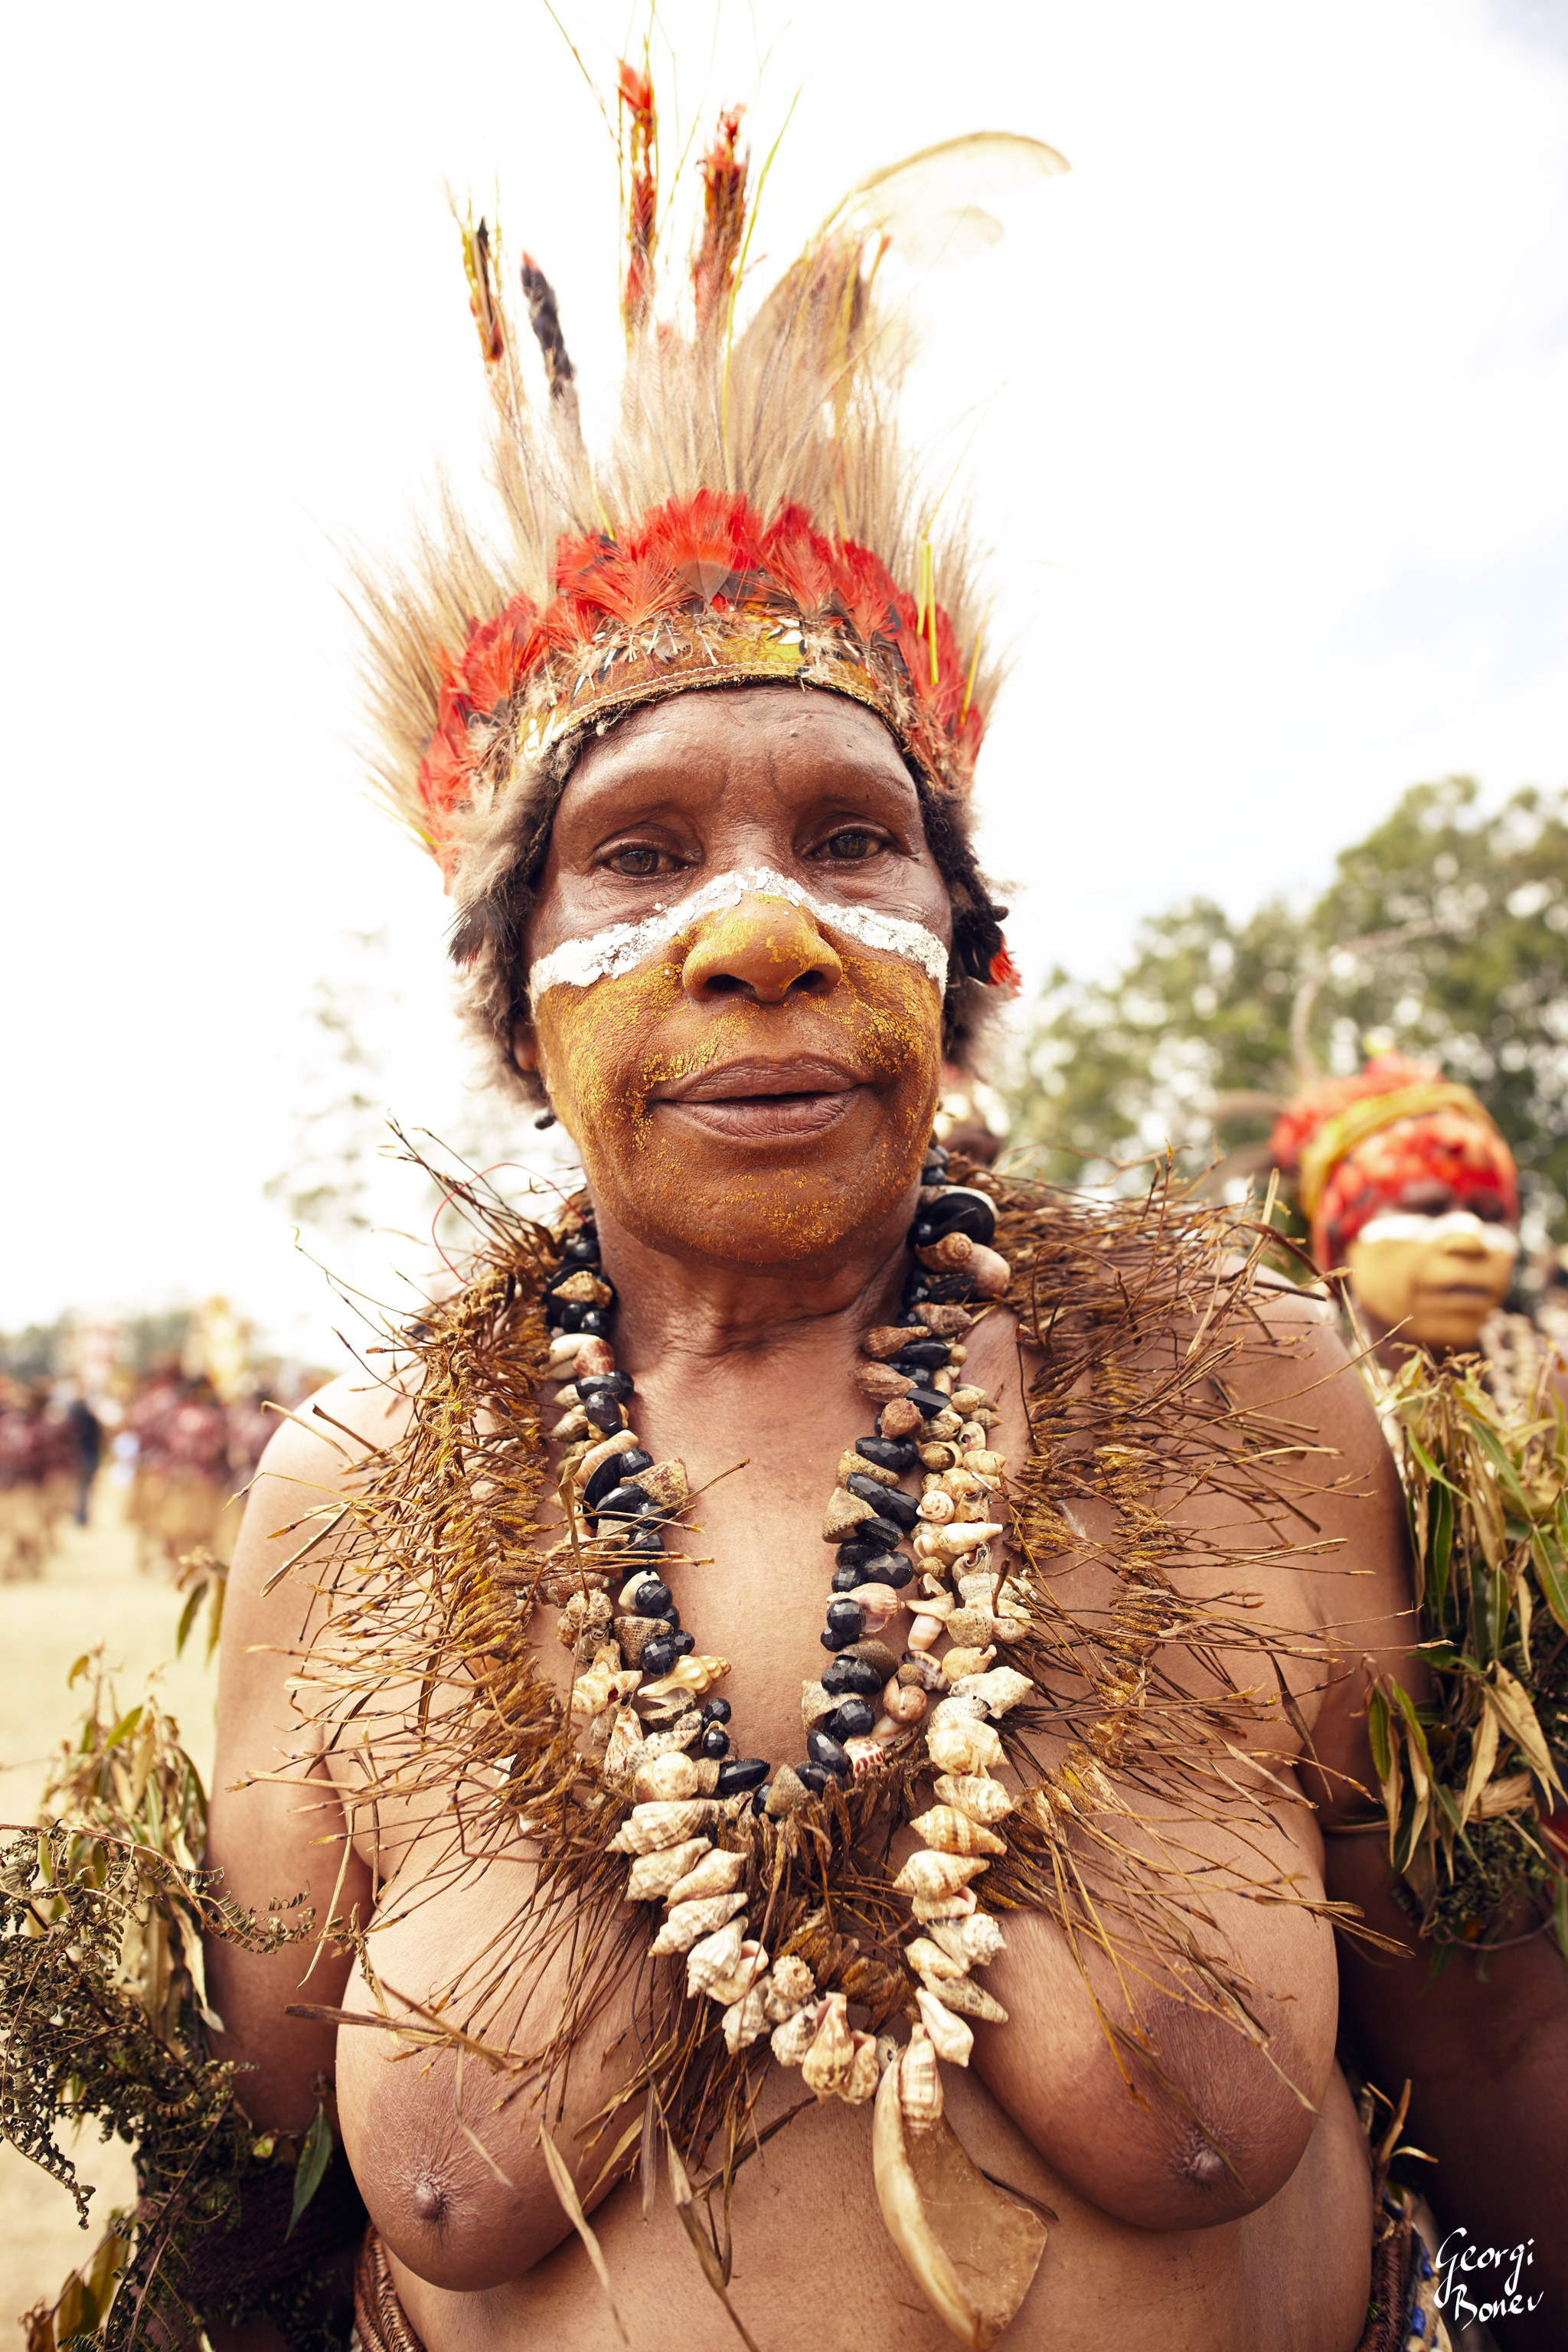 ARANGO WITCH IN PAPUA NEW GUINEA